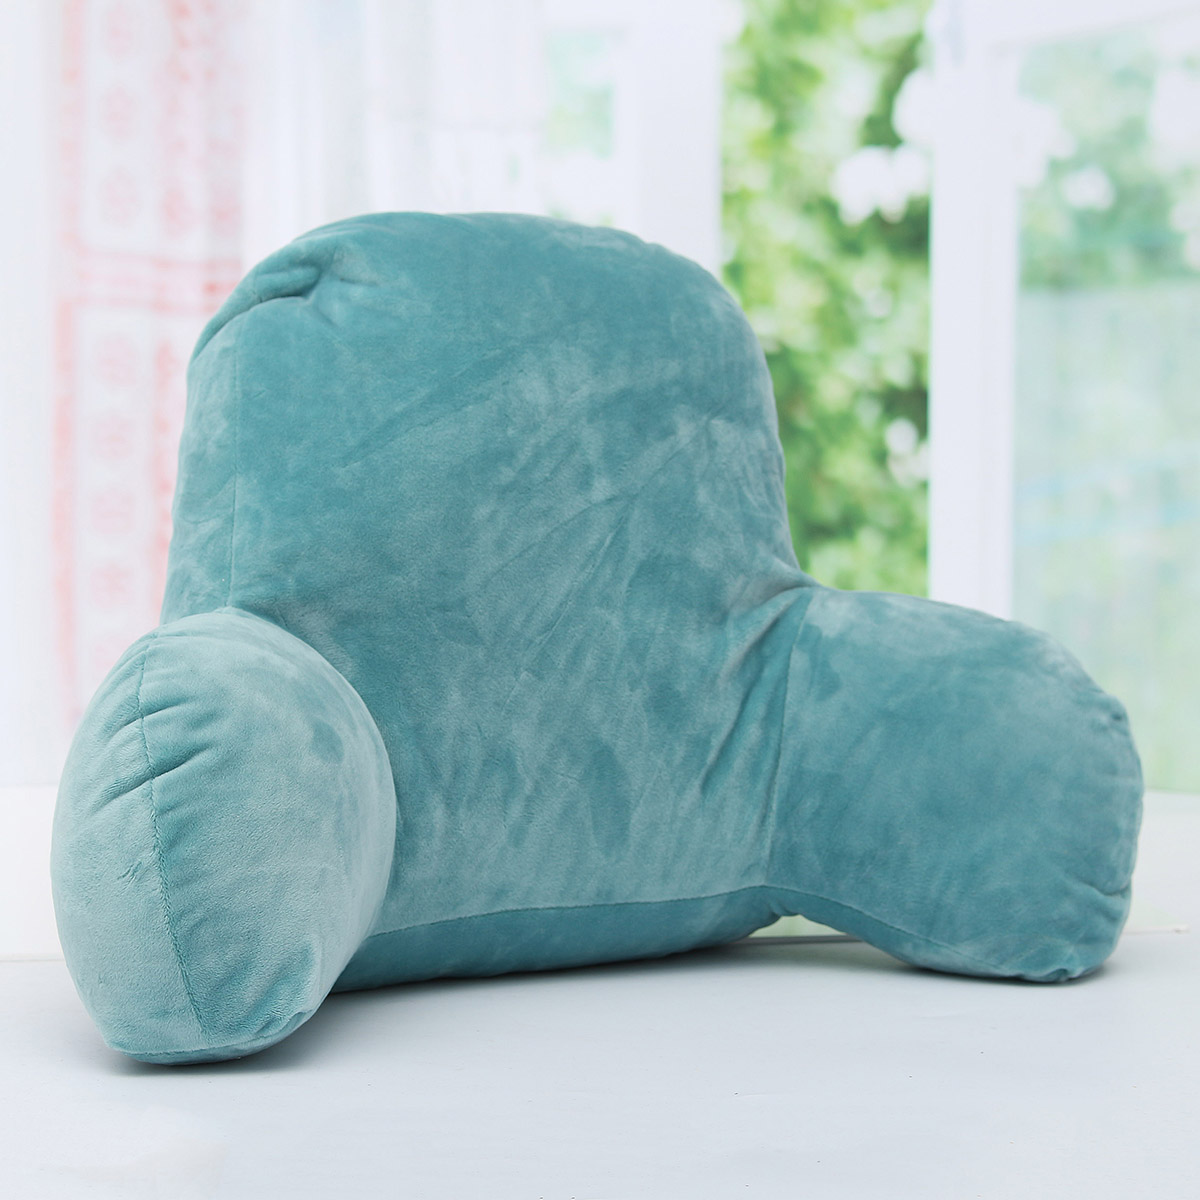 Comfort Micro Bed Rest – Reading and Bedrest Lounger – Sitting Support Pillow – Soft But Firmly Stuffed PP Cotton Fill – Backrest Pillow with Arms